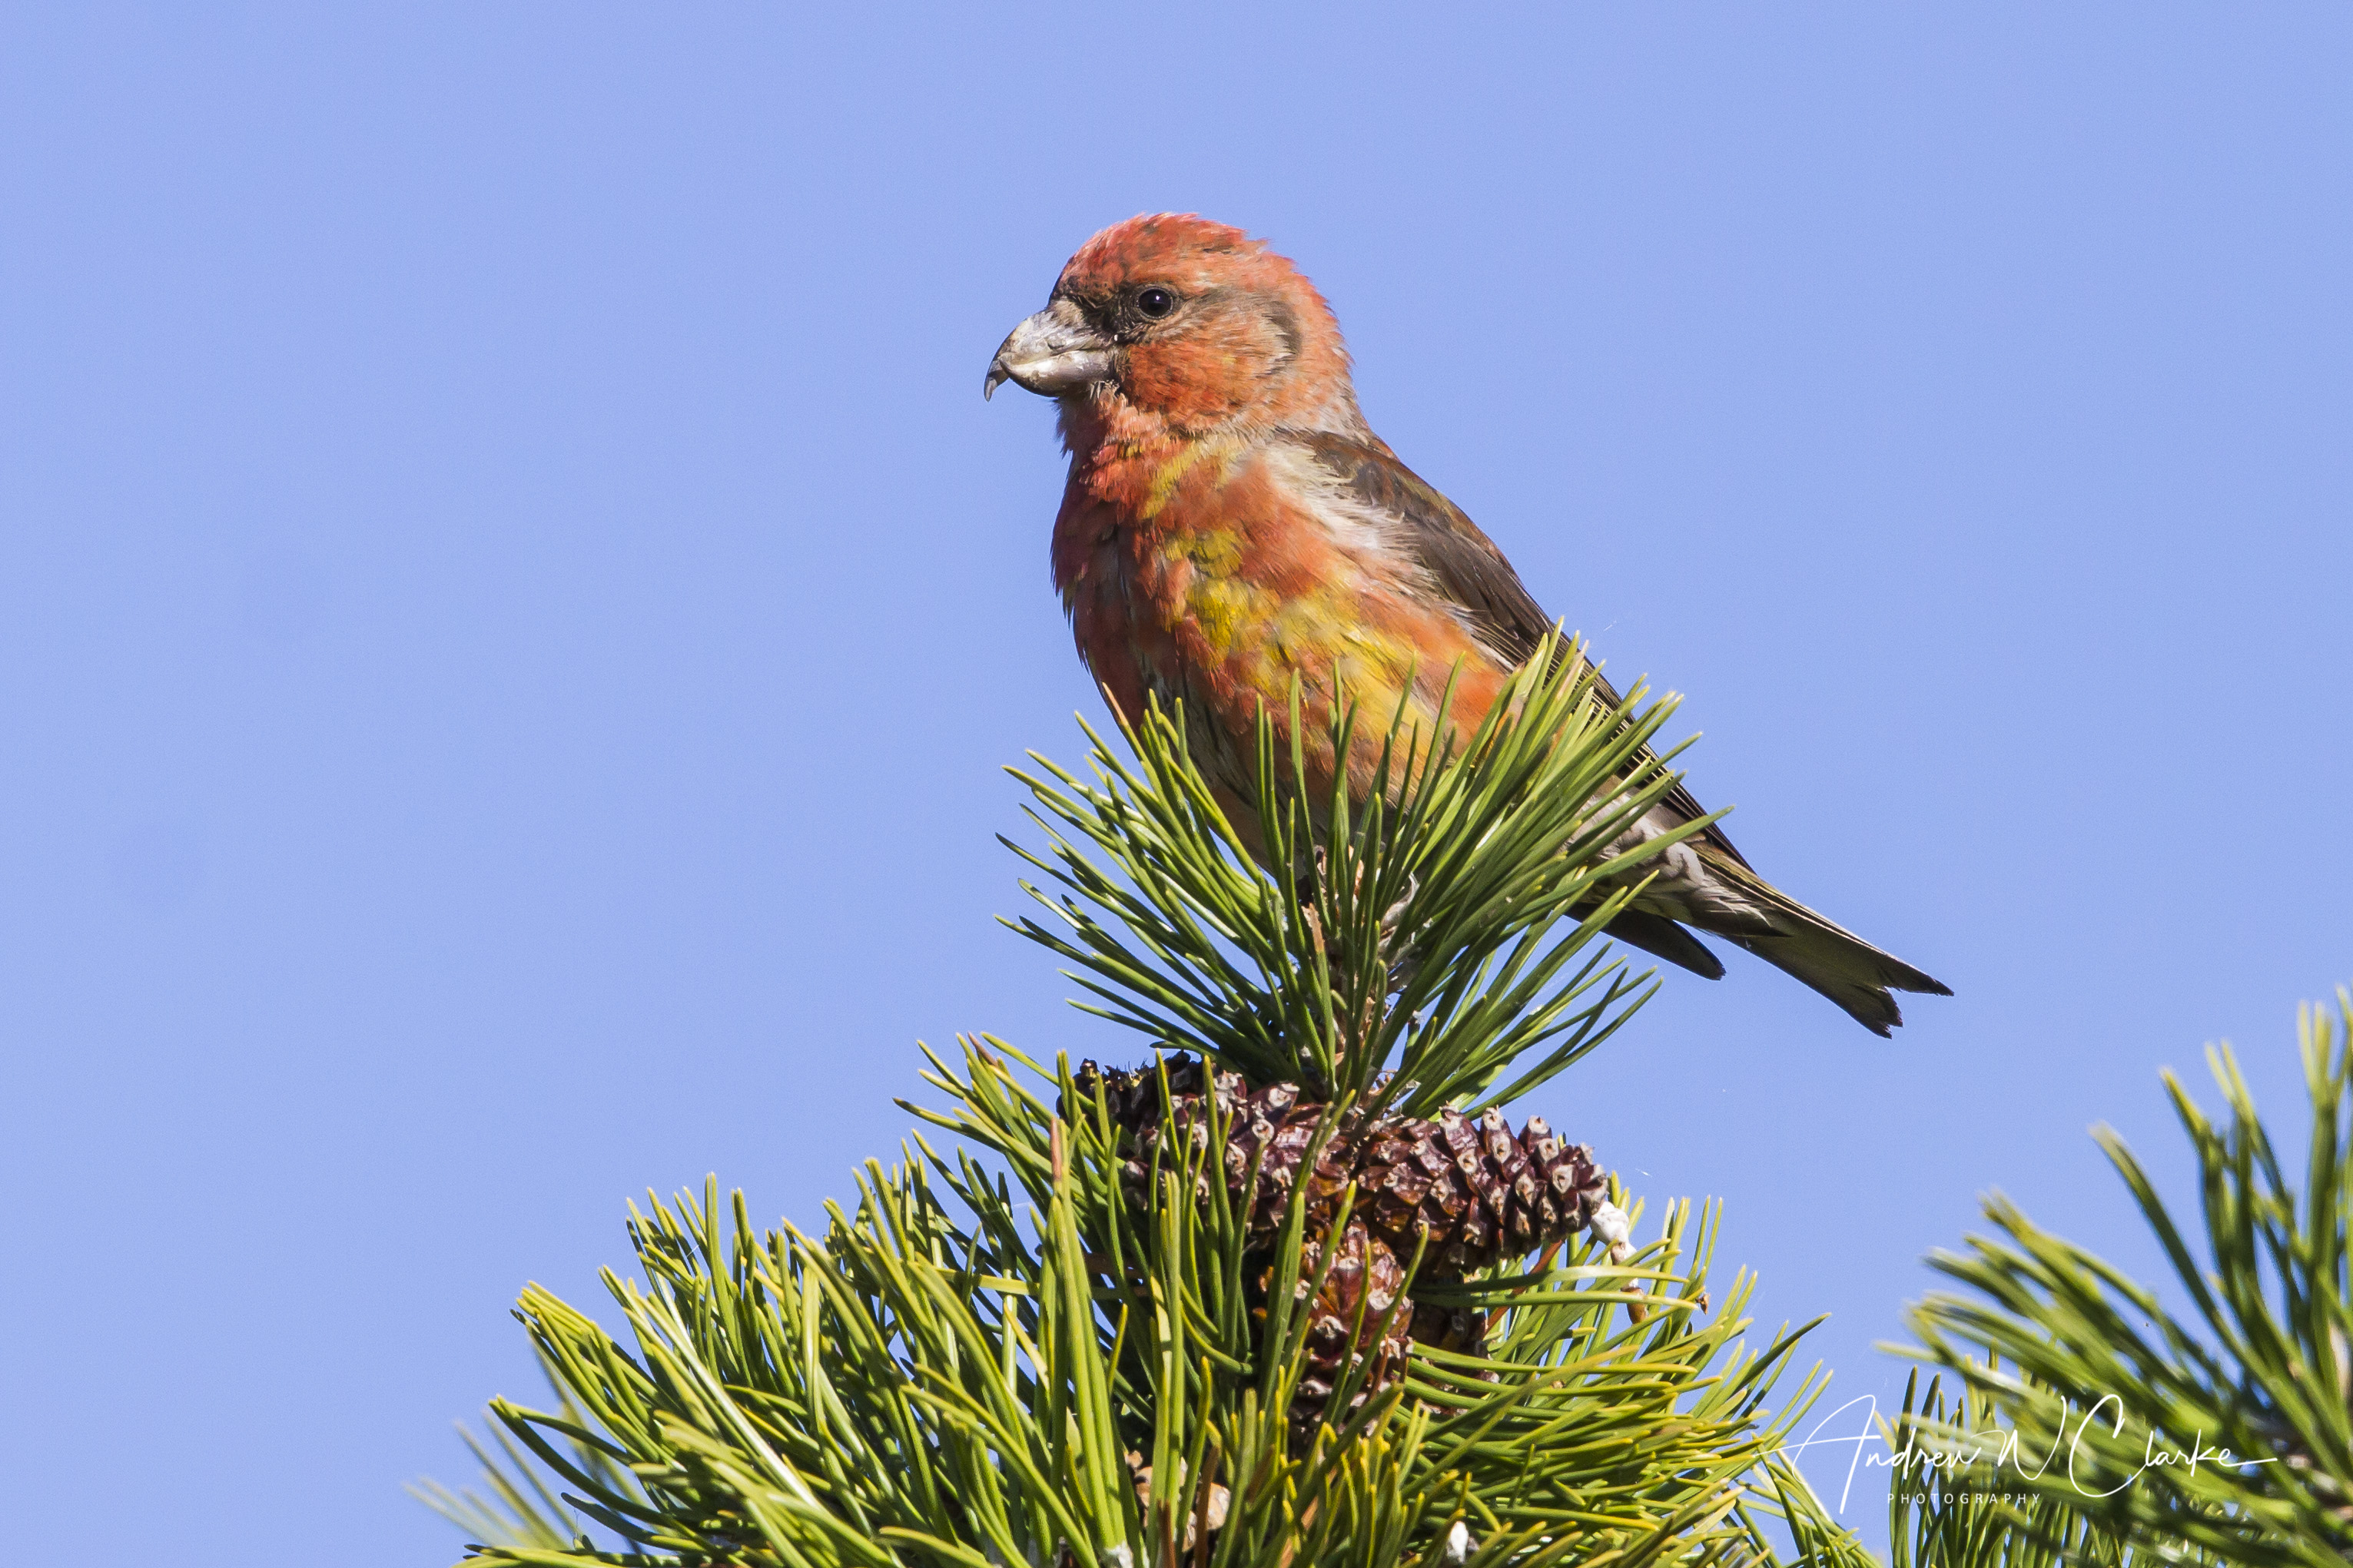 Red Crossbill / Grankorsnebb